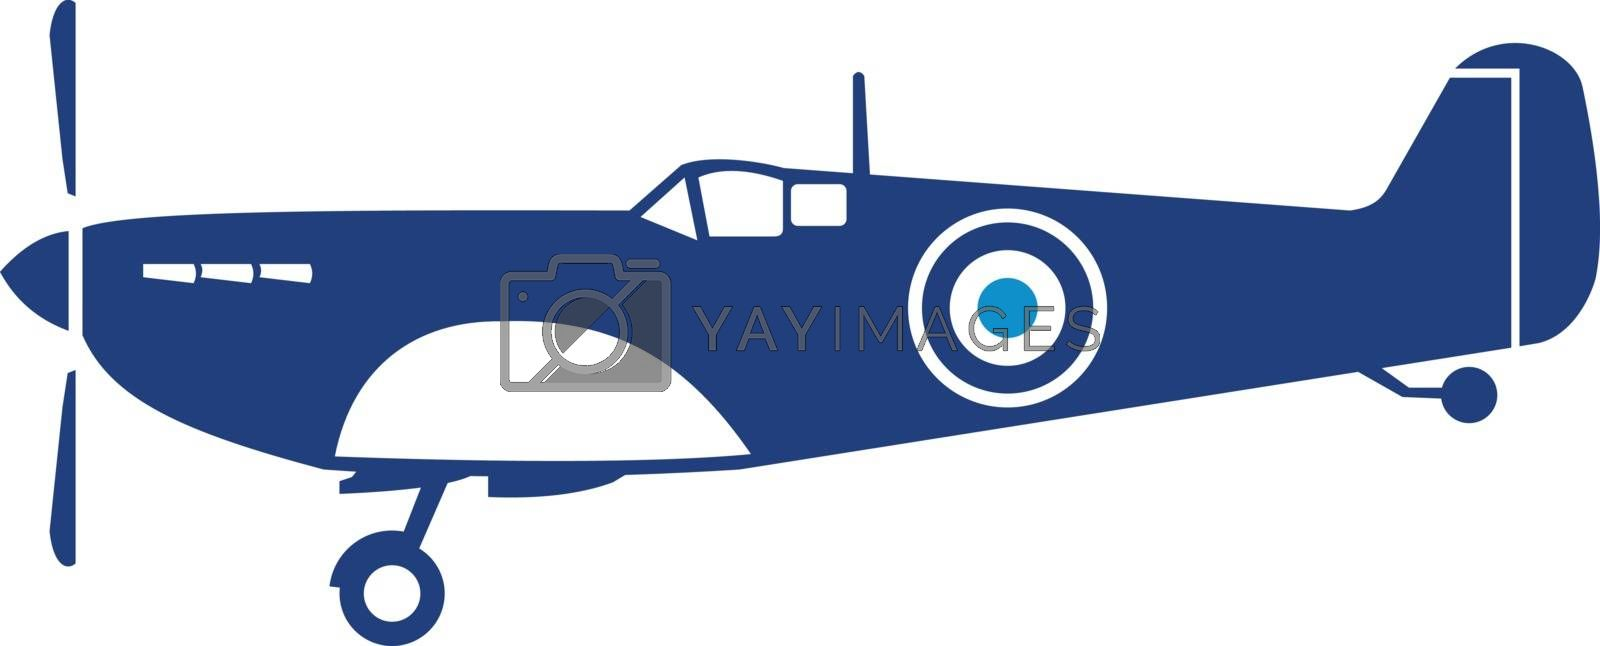 Illustration of a world war two fighter airplane spitfire viewed from the side set on isolated white background done in retro style.